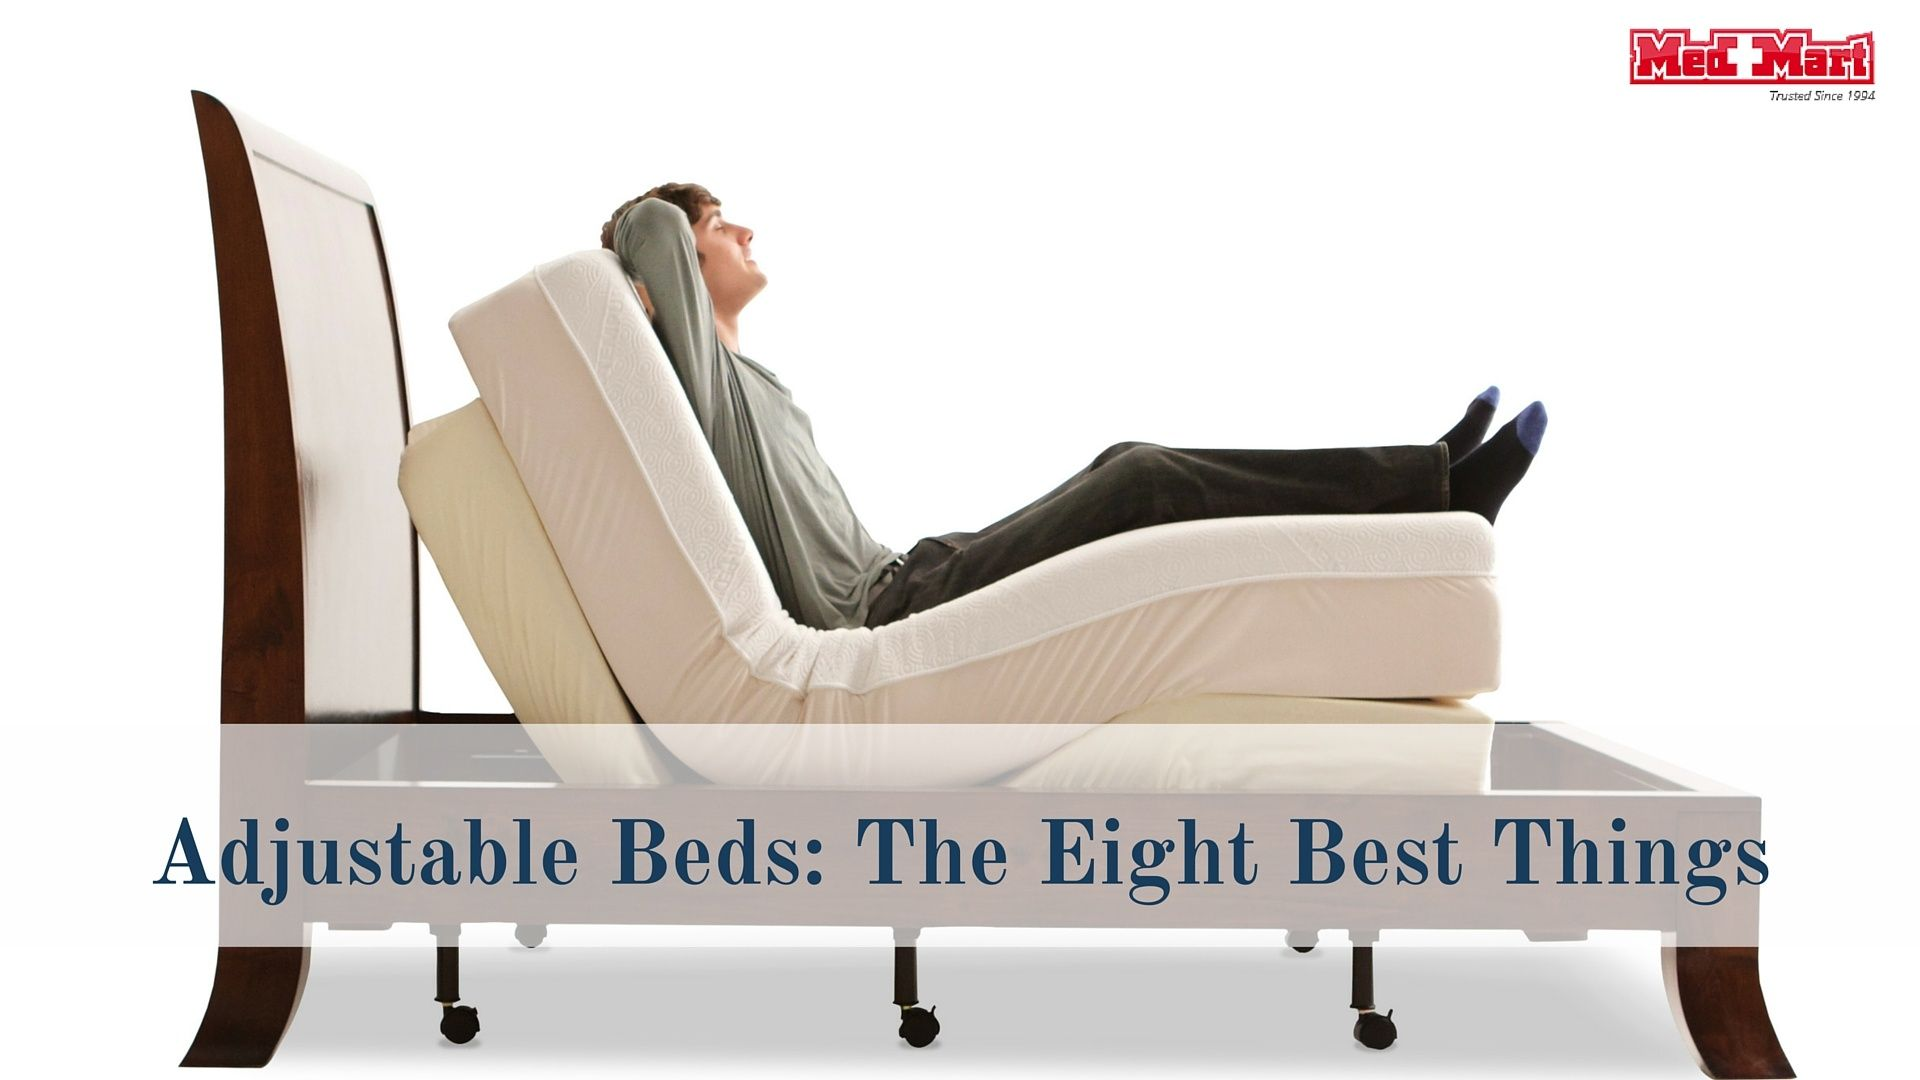 Check out 8 benefits AdjustableBeds provide to your sleep